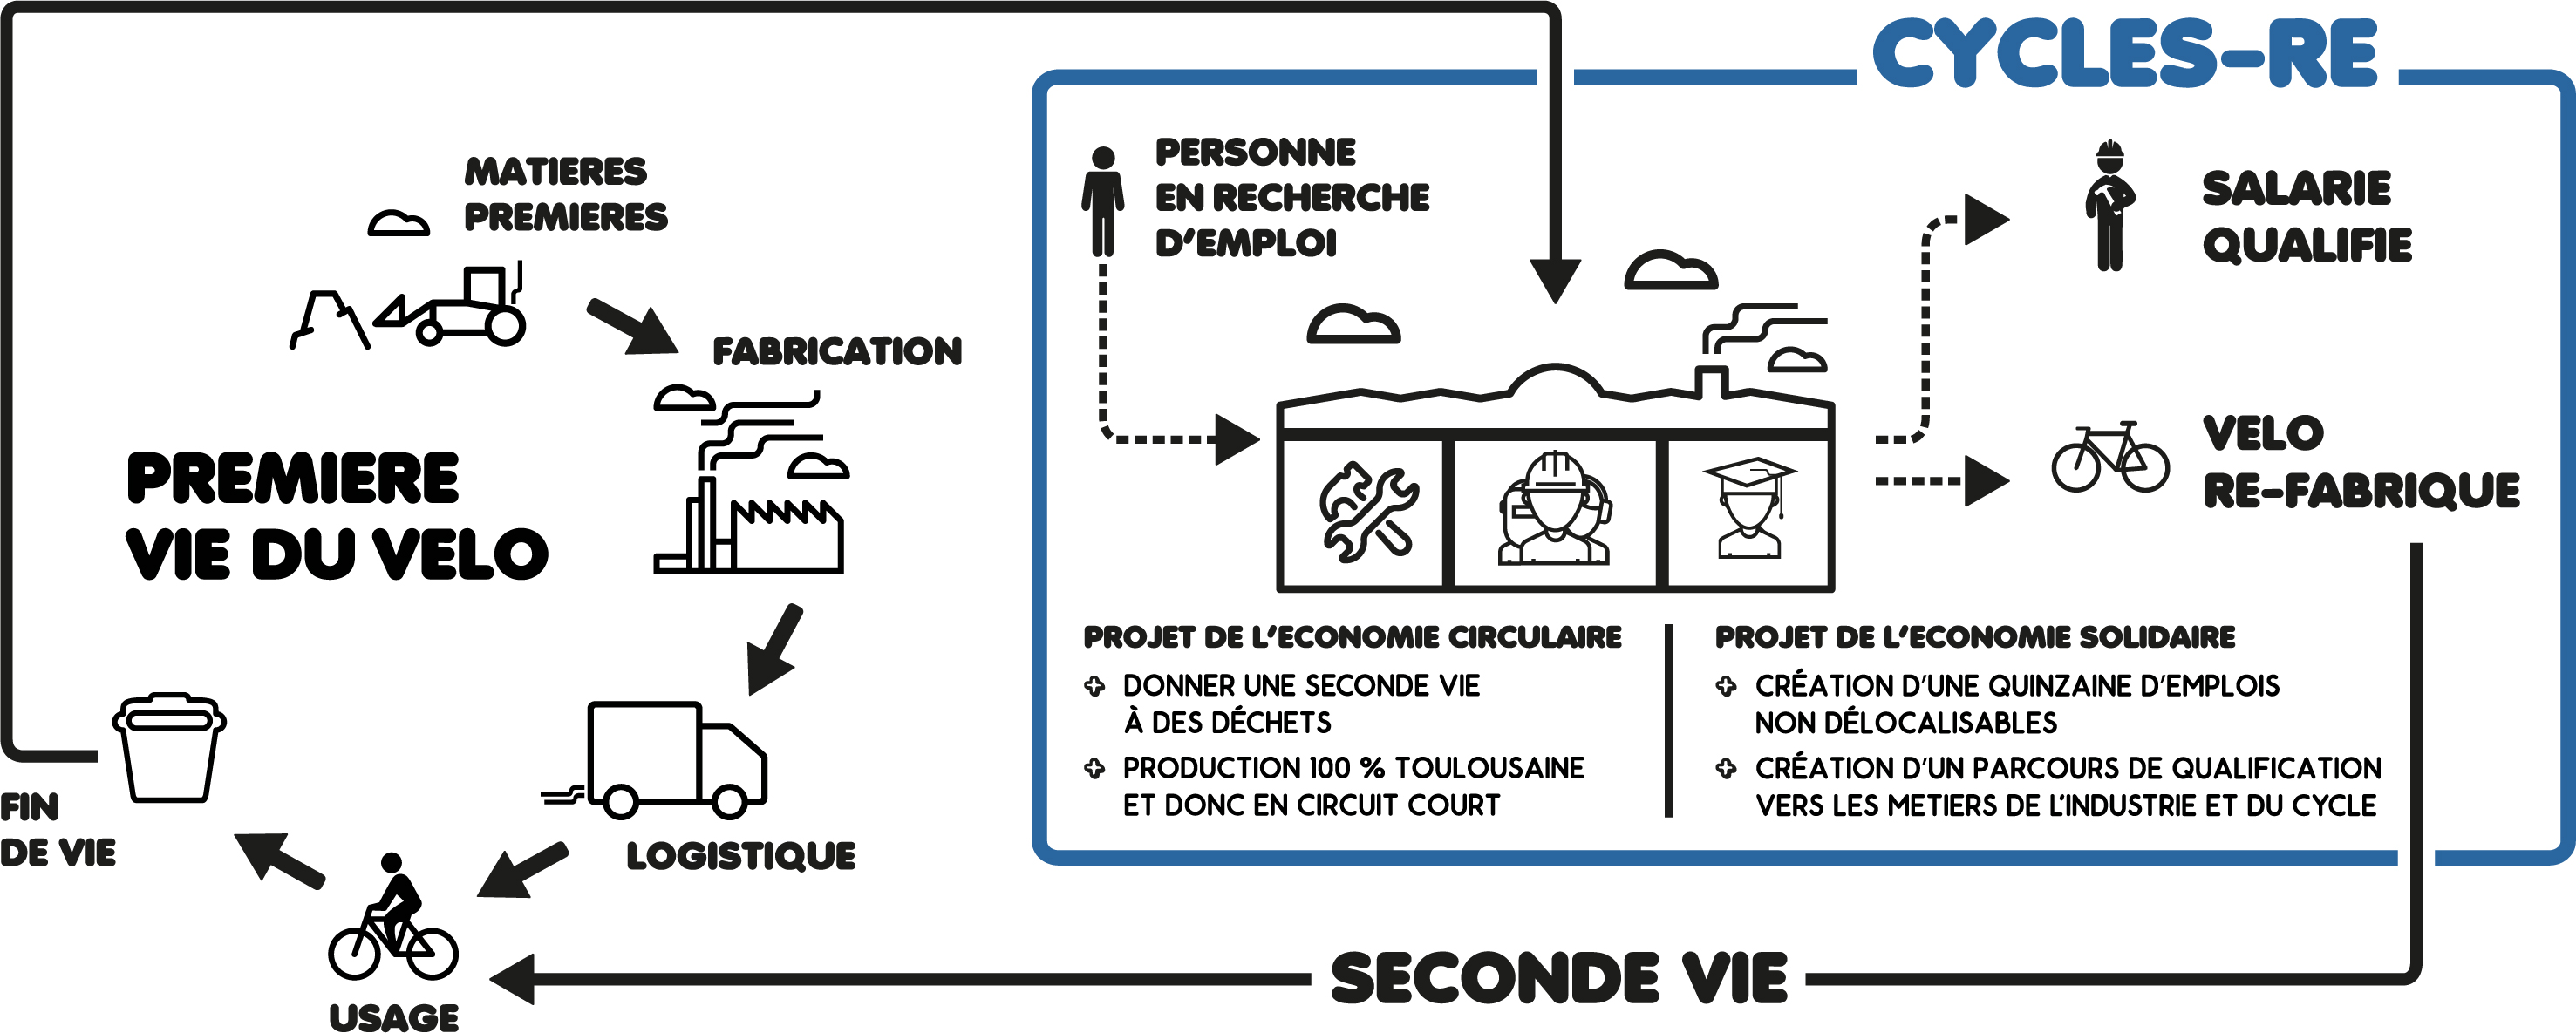 Schéma Fonctionnement Cycle Re